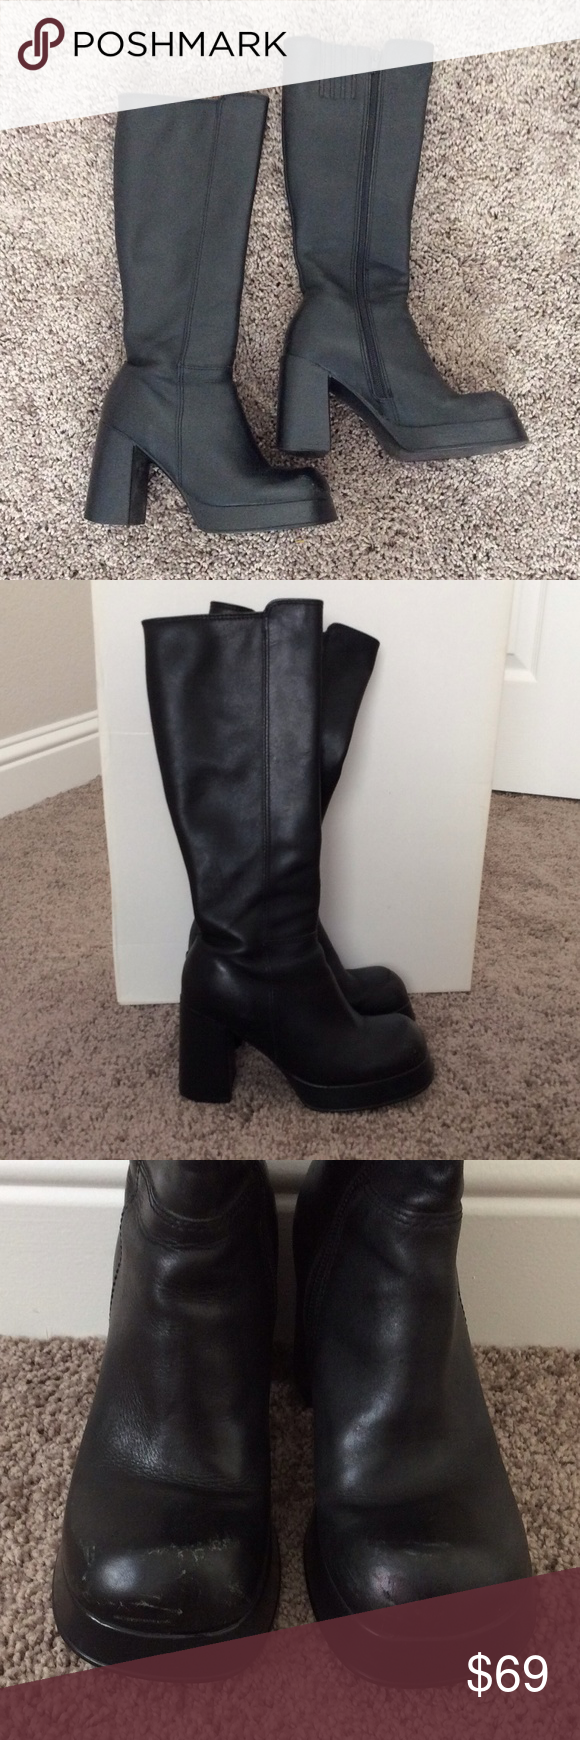 aa8568c84 Steve Madden Porsha Black Leather boots Used condition in great shape  besides major scuffs on front